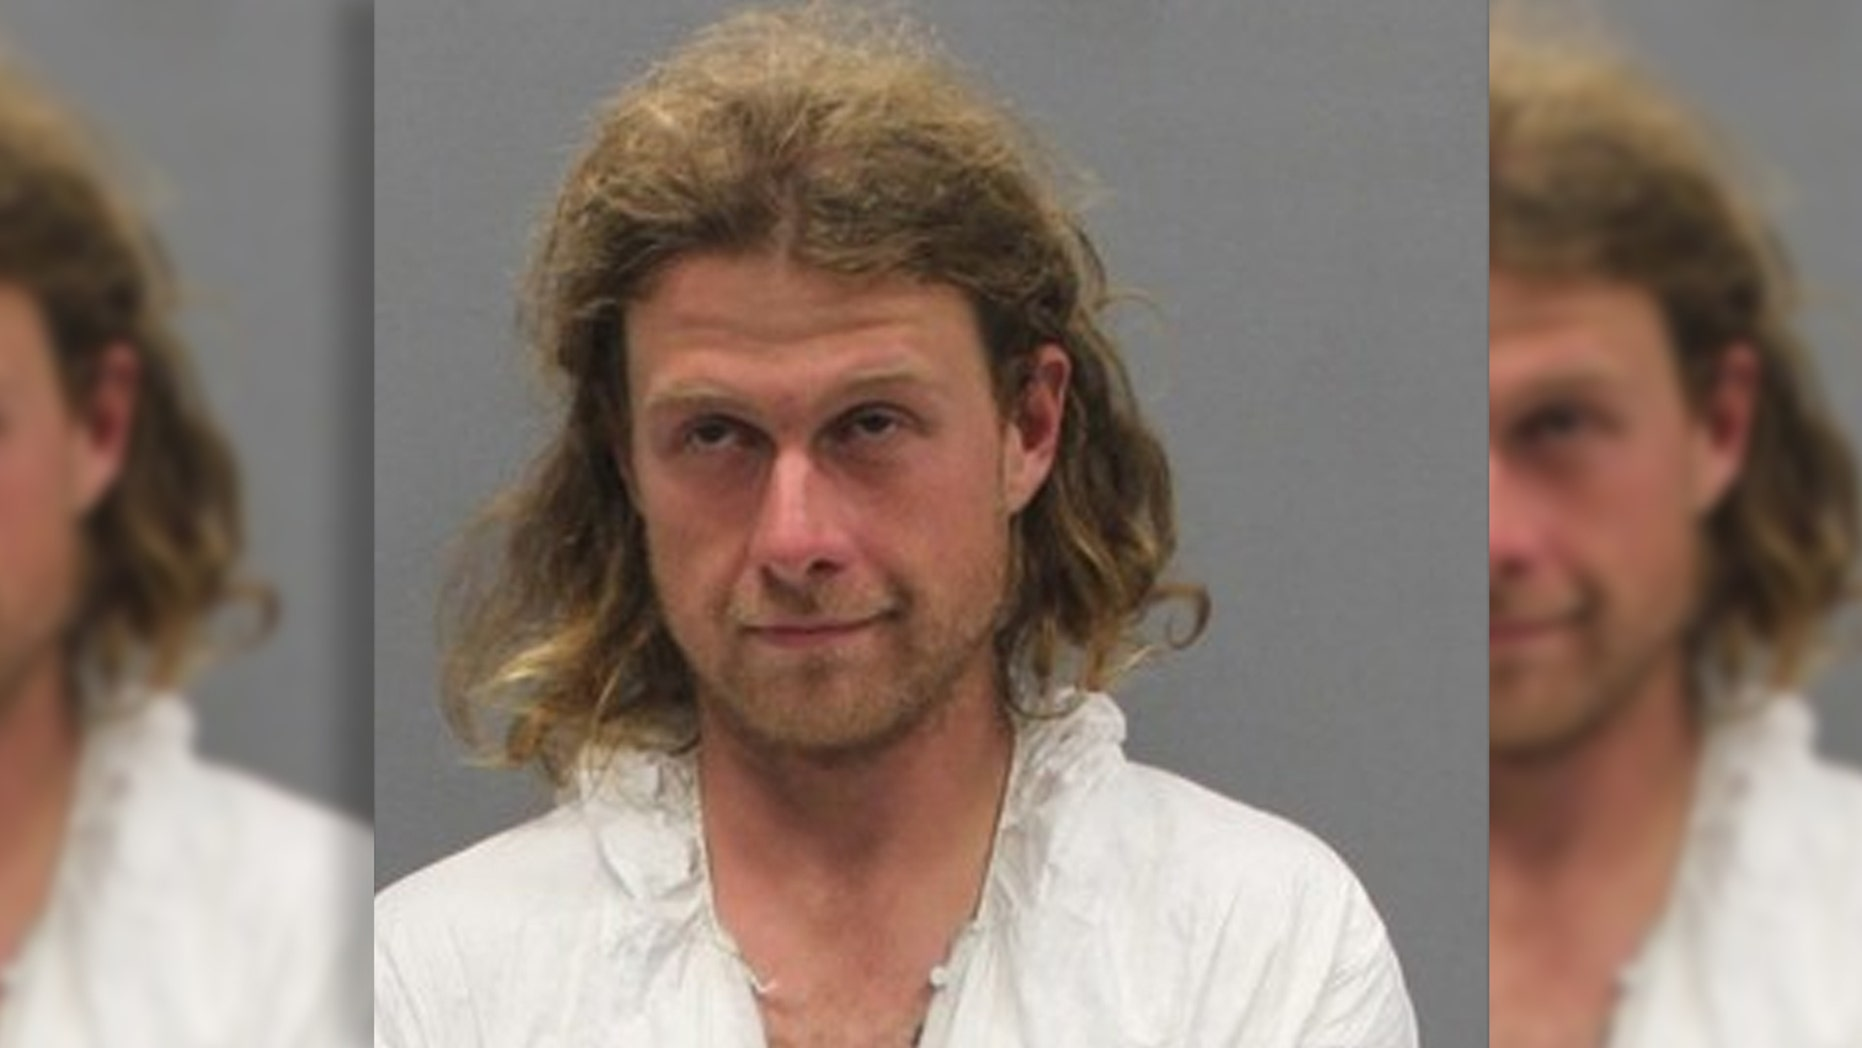 Mugshot for James Jordan, accused in a machete attack on the Appalachian Trail in Virginia early Saturday that killed a male hiker and severely injured a female hiker.